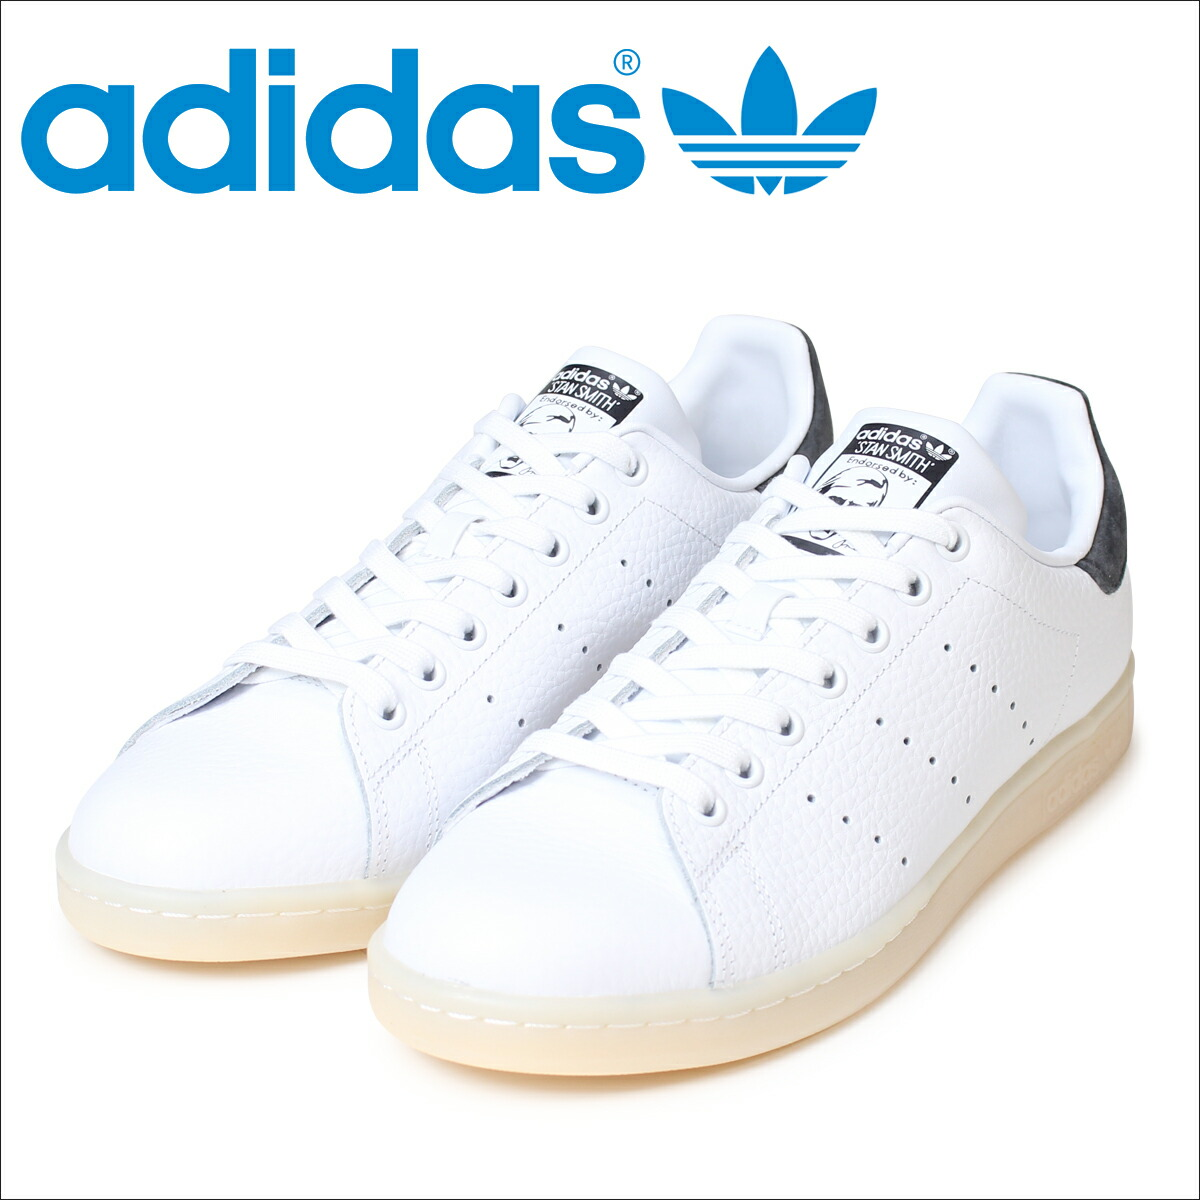 adidas stan smith online shop